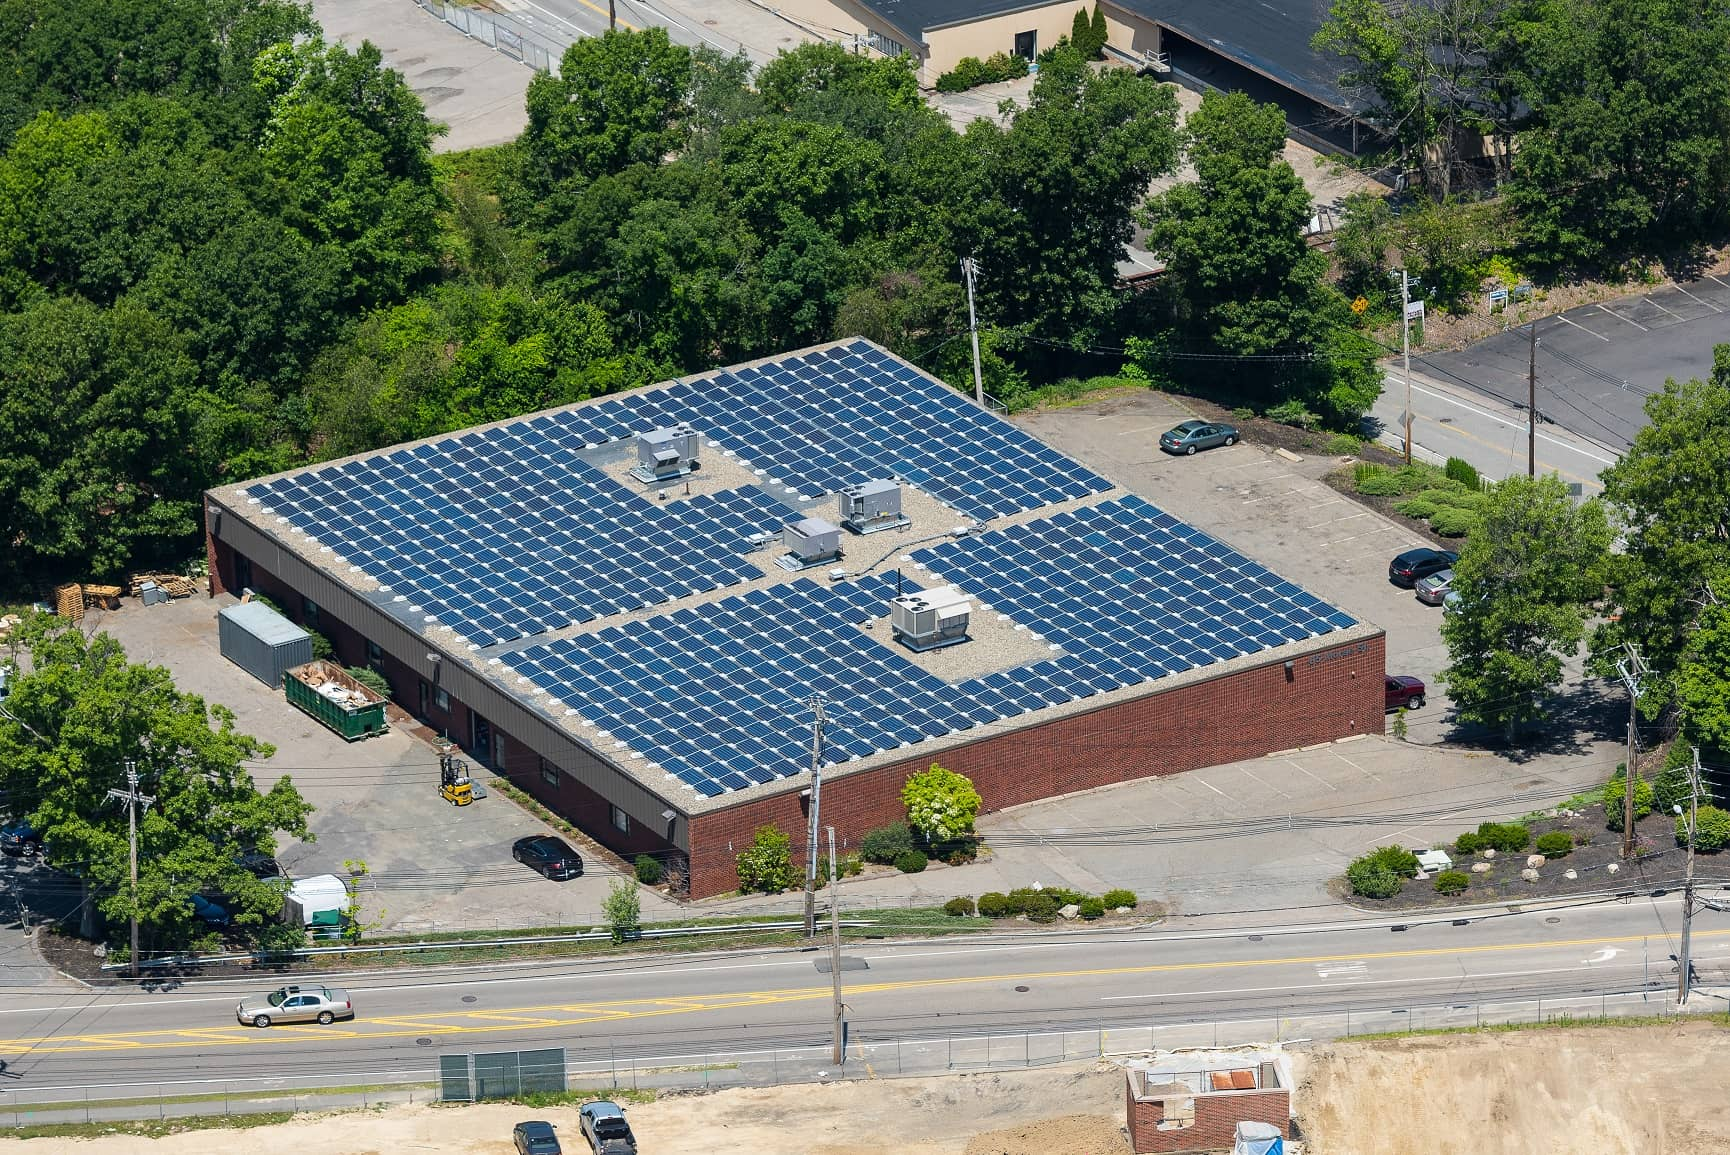 Gaston Gaston Electrical Installs Rooftop Solar At HQ